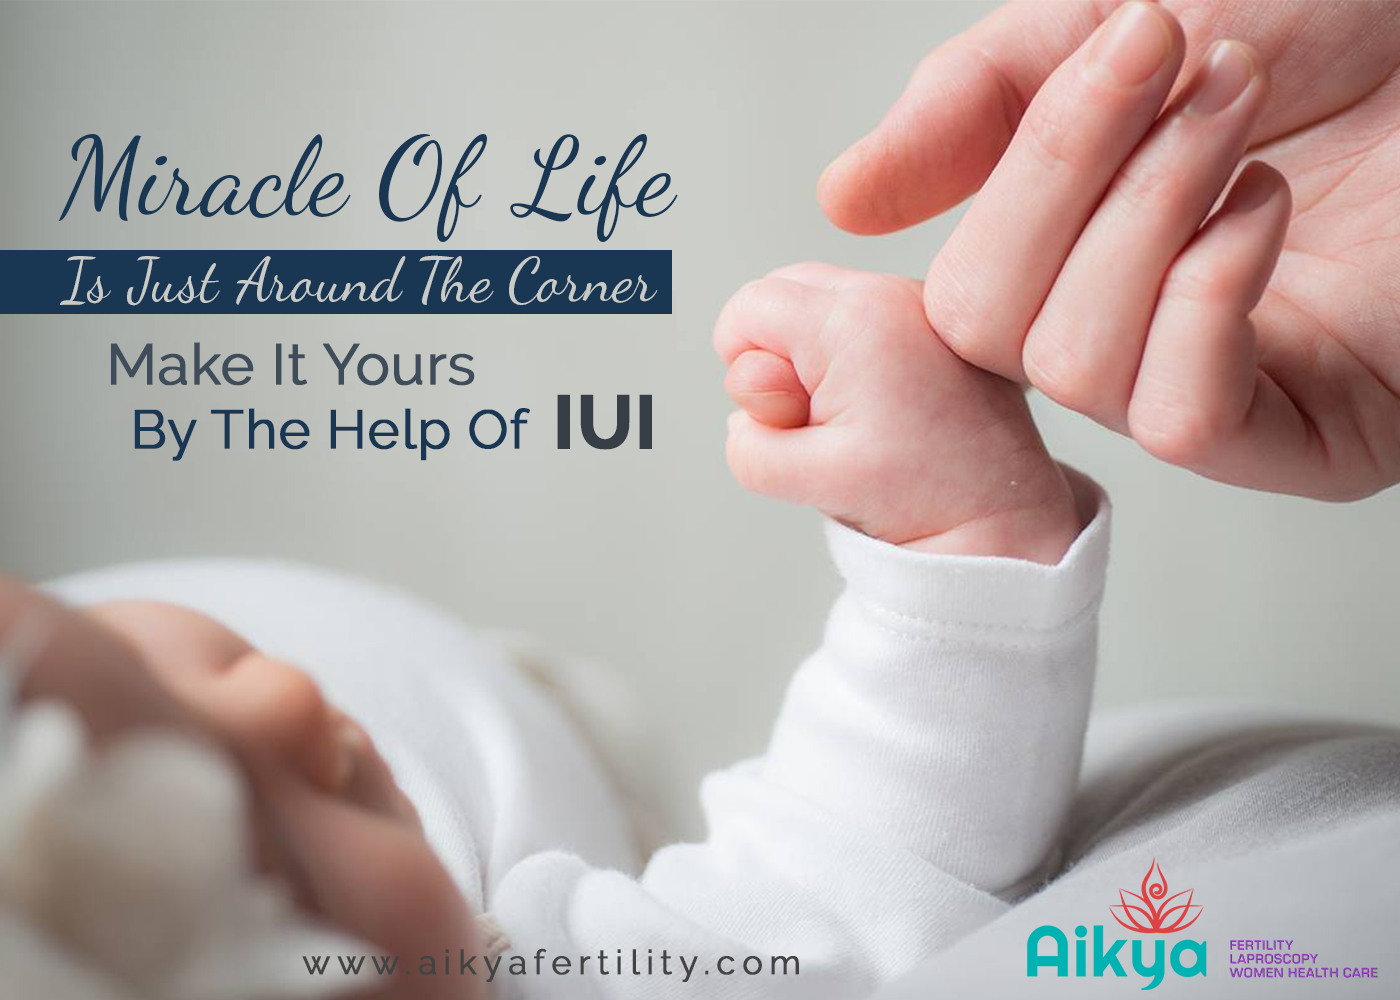 Intrauterine insemination (IUI) is a form of assisted conception treatment.  During IUI,